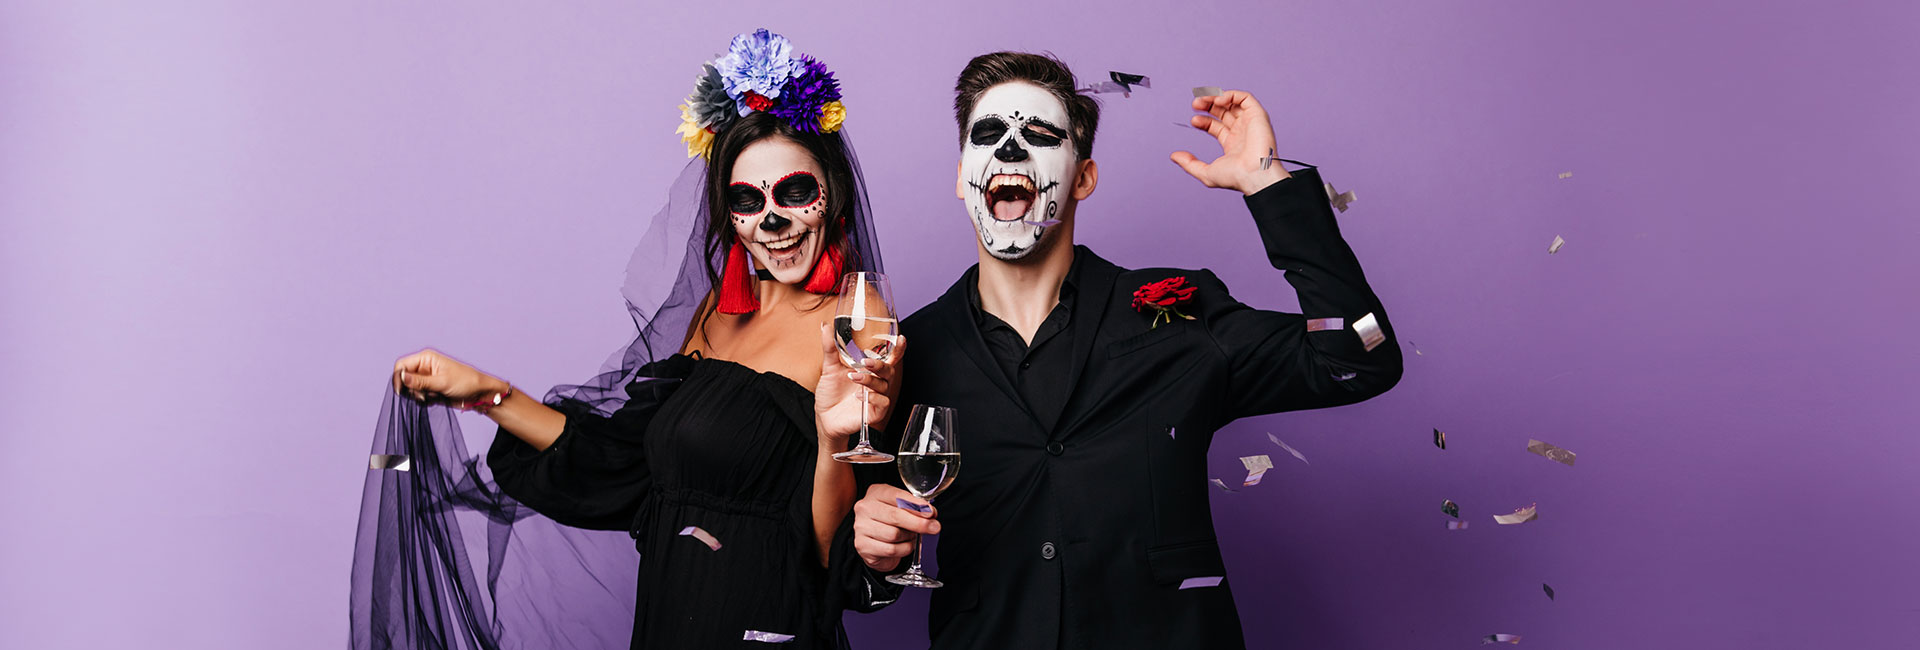 Halloween and day of the dead celebration in cabo san lucas